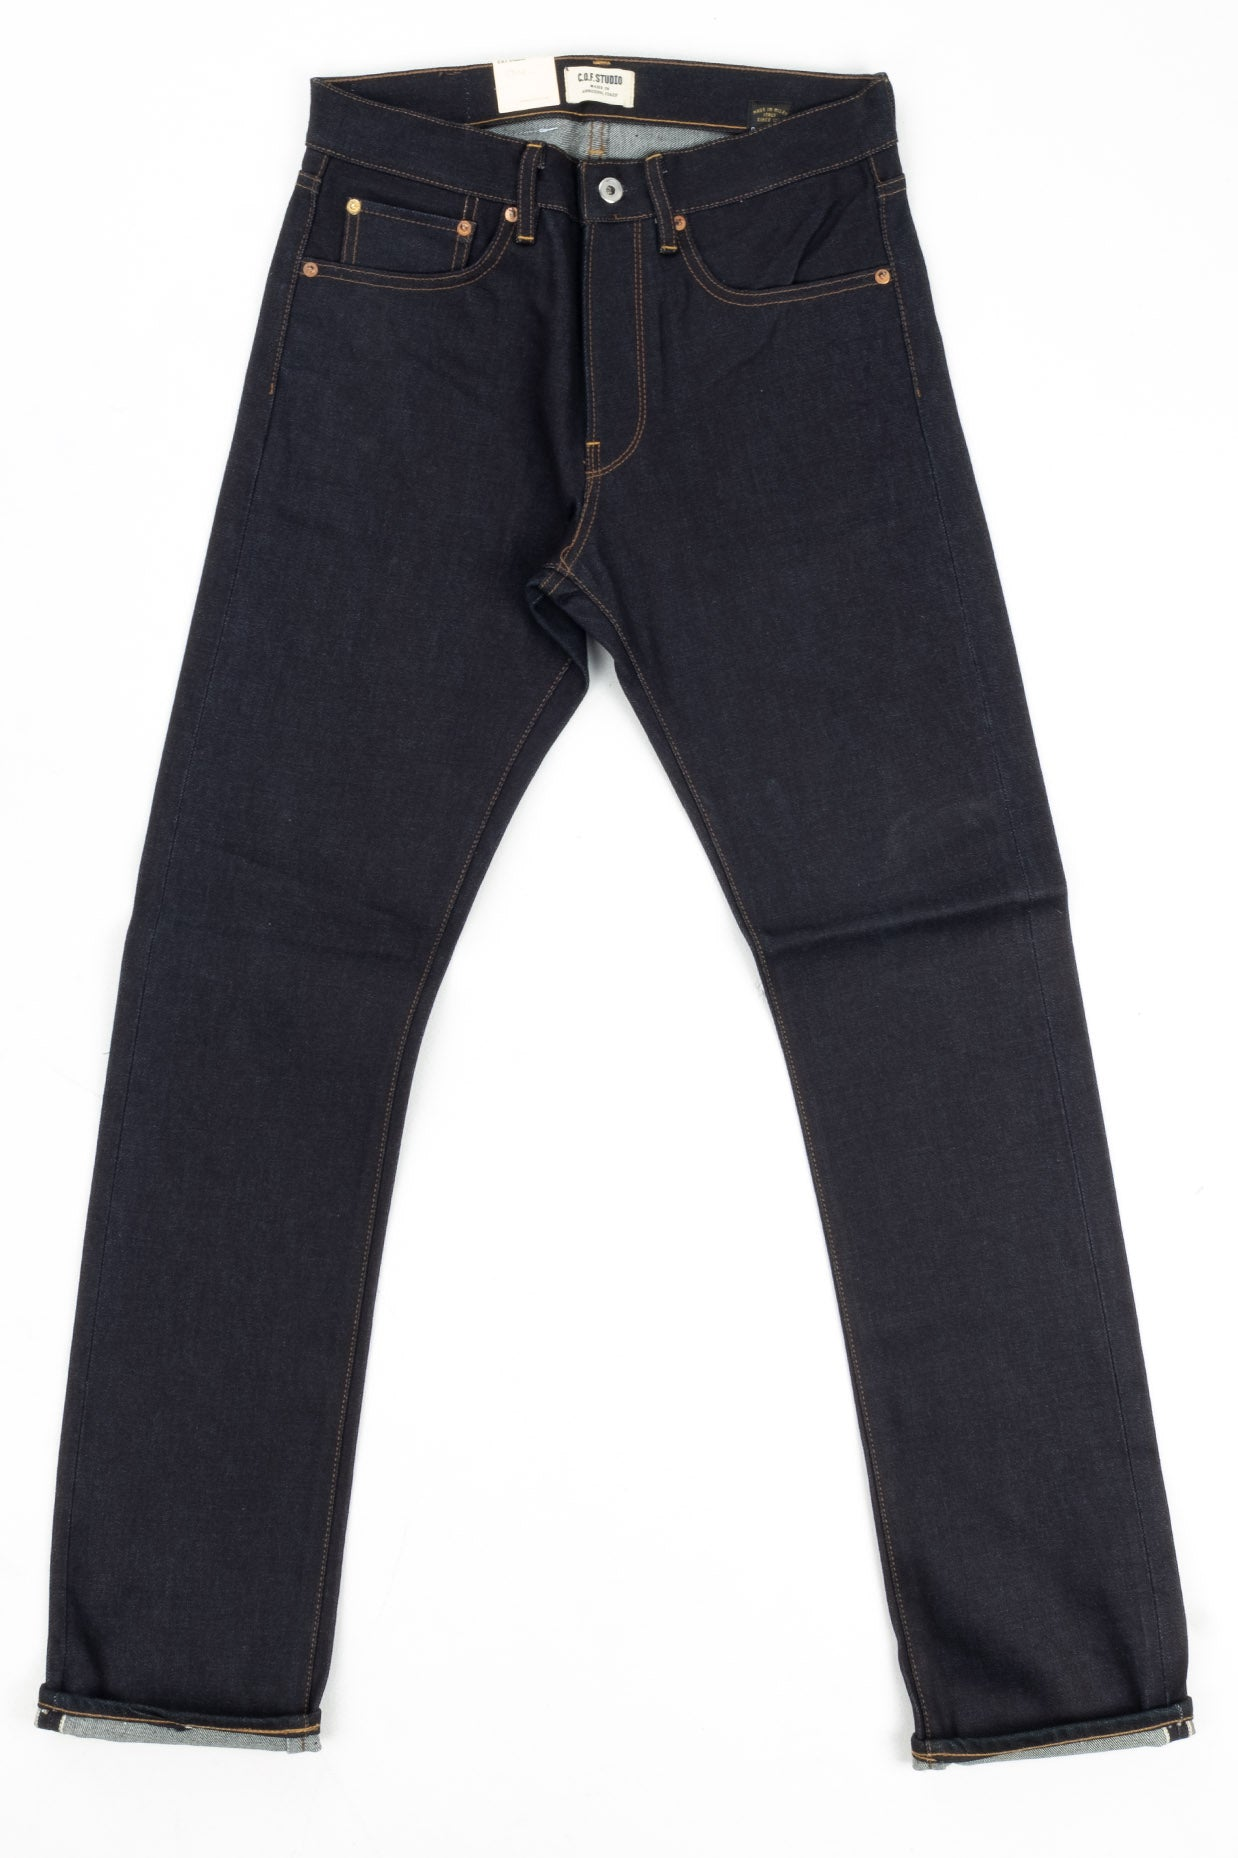 M2 16oz Selvedge - Unwashed